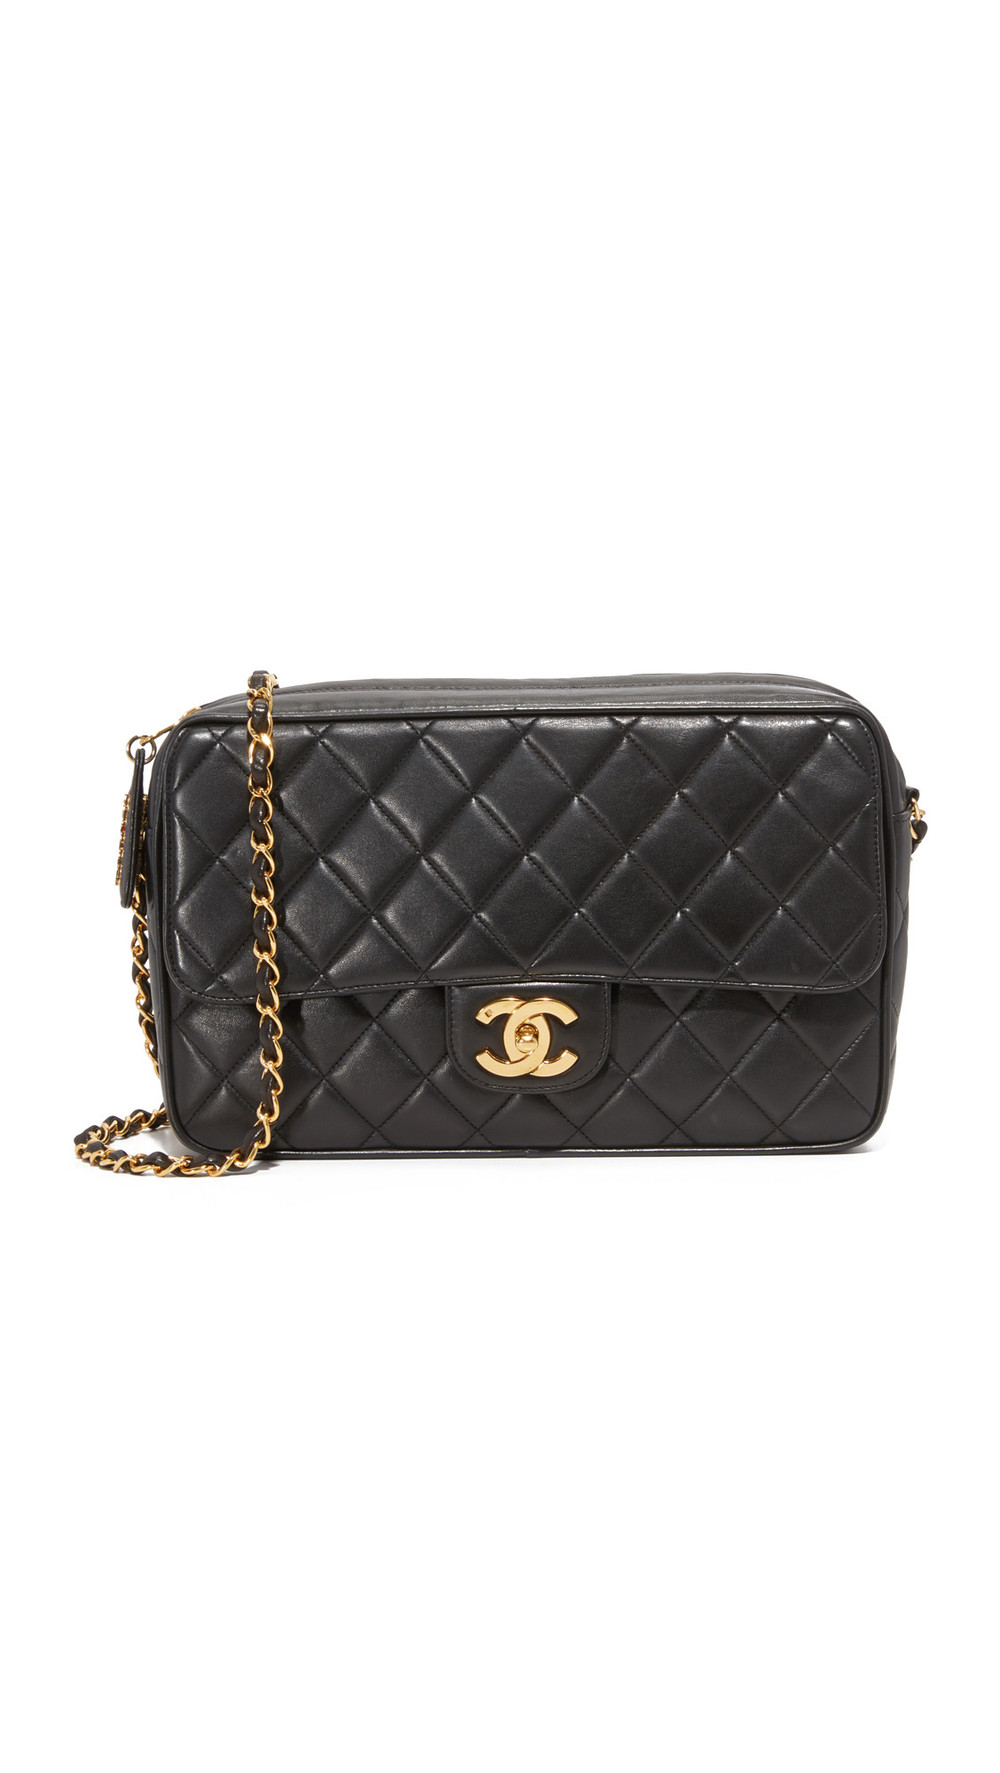 4147bfe0adc4 $3995. What Goes Around Comes Around · What Goes Around Comes Around Chanel  Camera Bag (Previously Owned) - Black